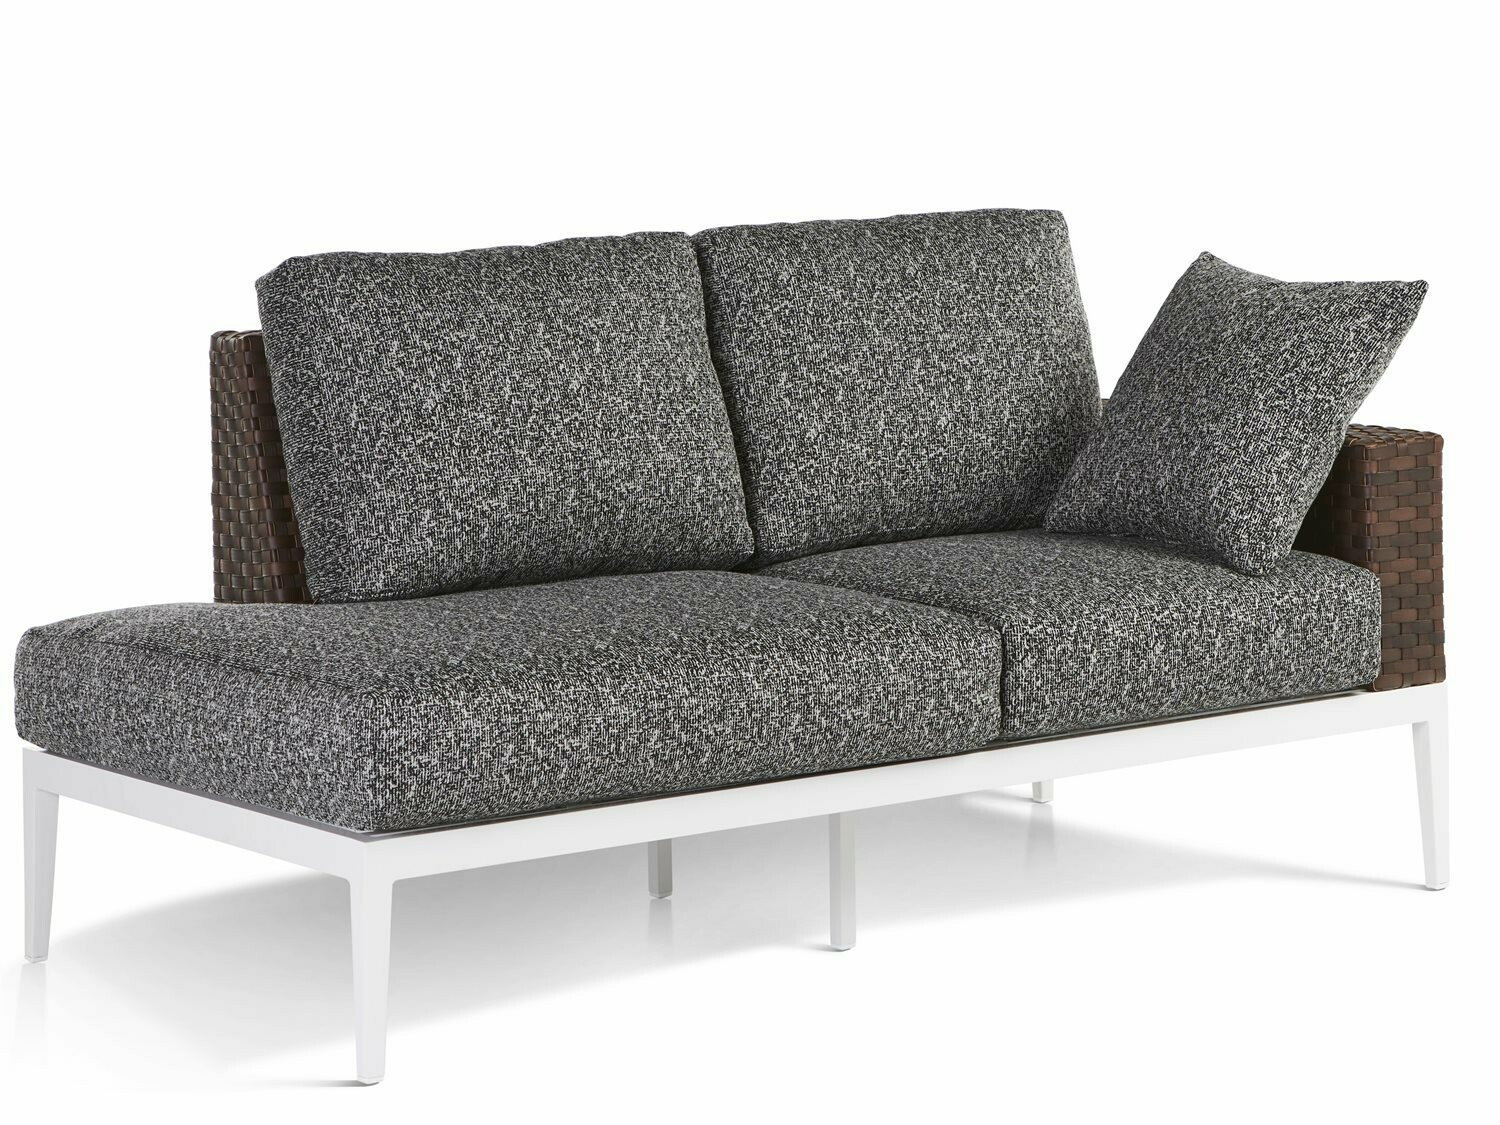 South Sea Rattan Stevie Wicker Loveseat with Right Side Facing Table